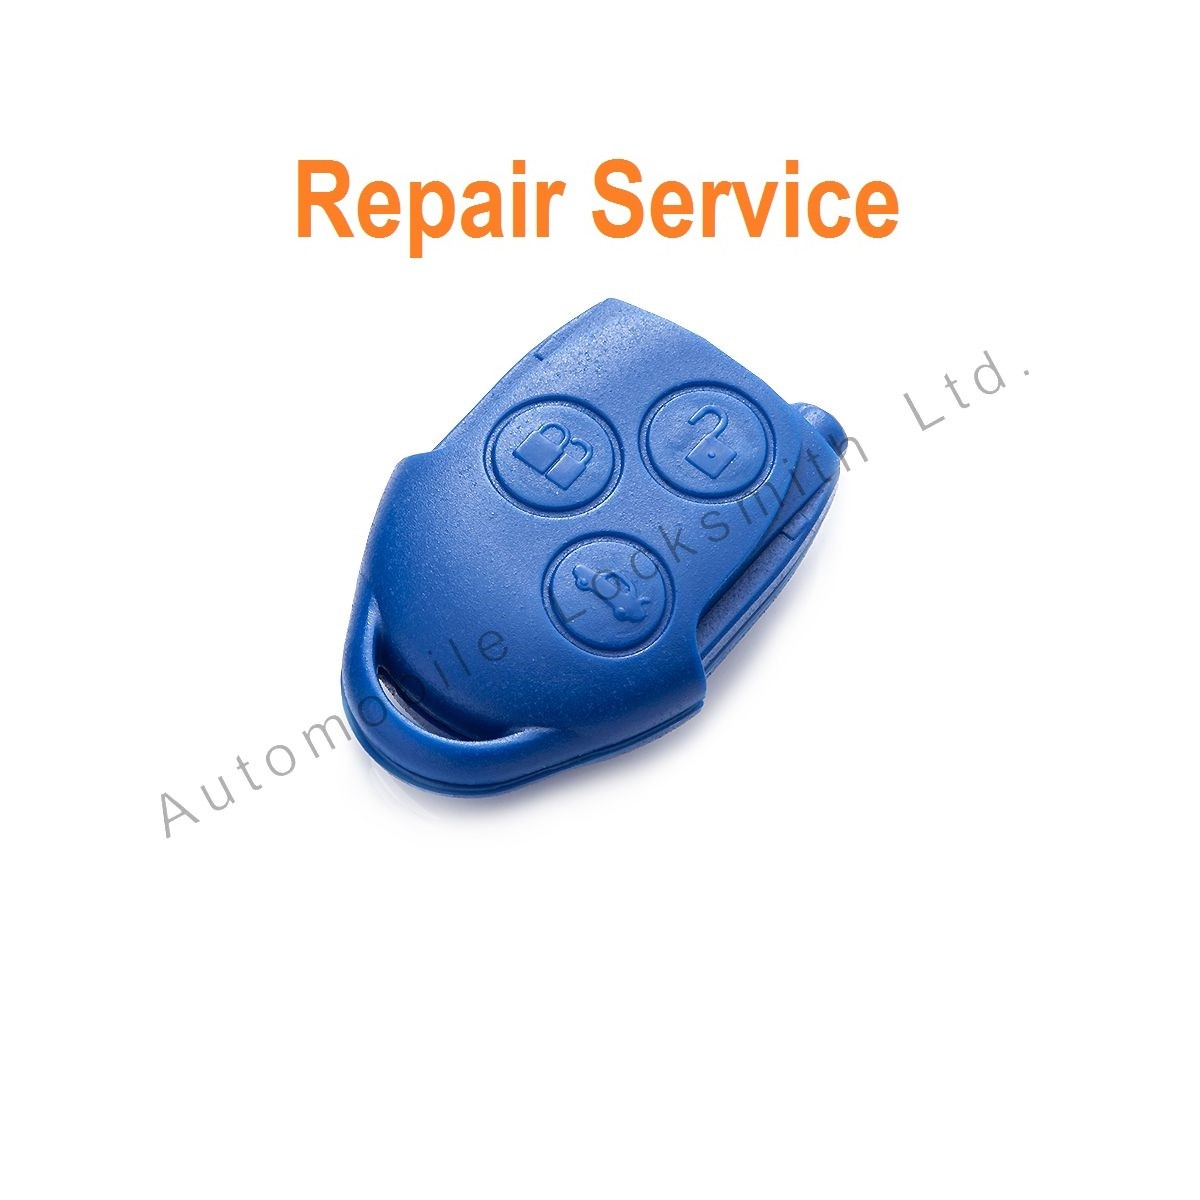 REFURBISHMENT for Ford Transit Connect 3 button remote key fob REPAIR SERVICE FIX